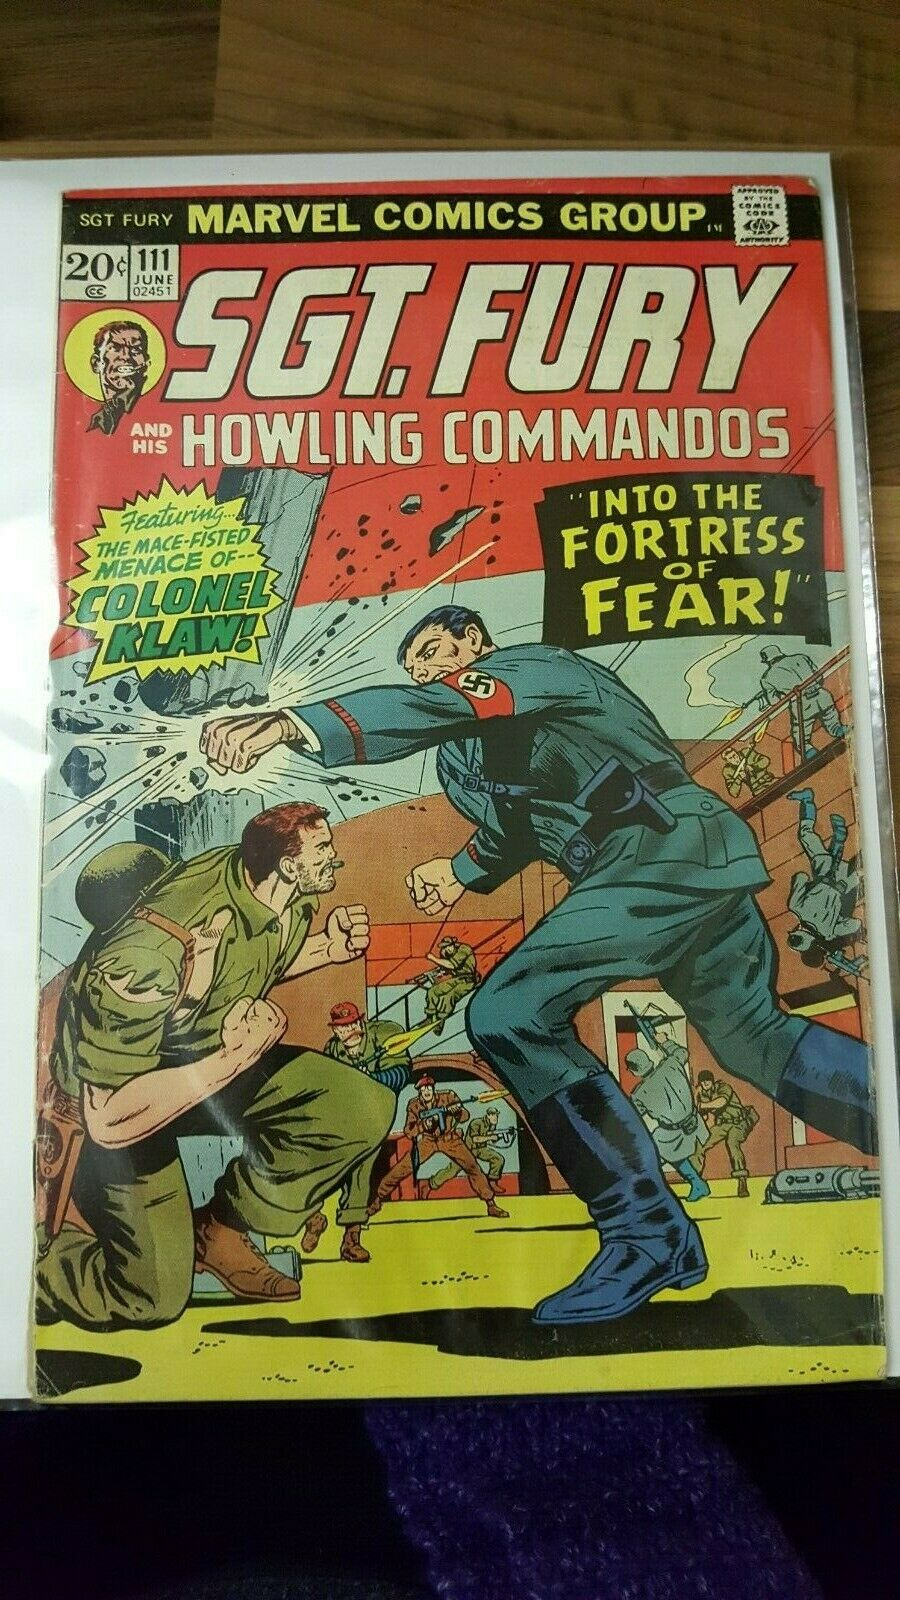 Sgt. Fury and His Howling Commandos #111